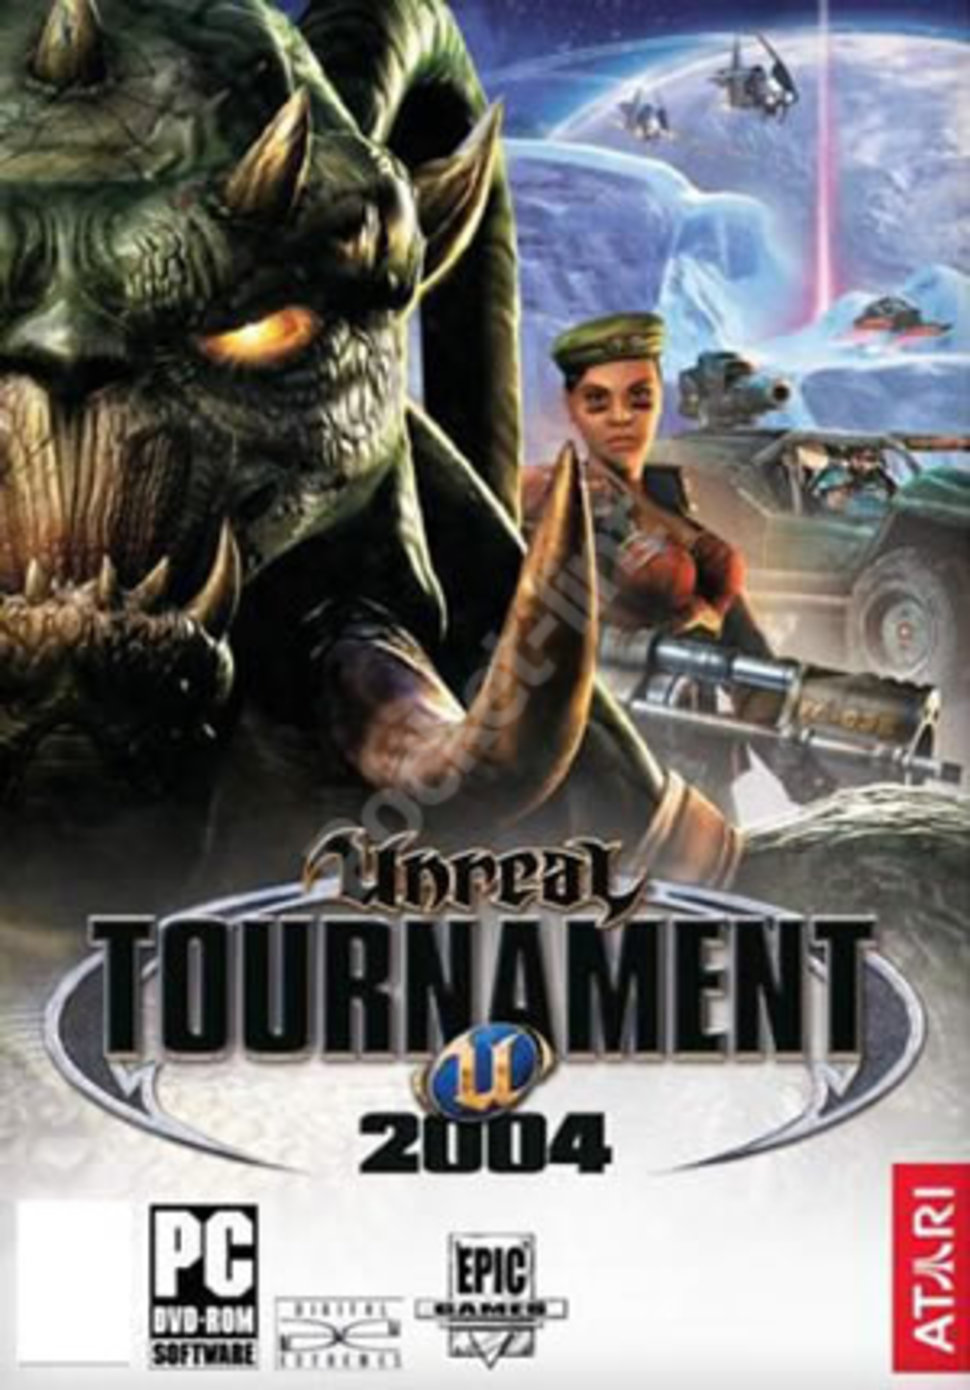 Clear Choice Reviews >> Unreal Tournament 2004 - PC